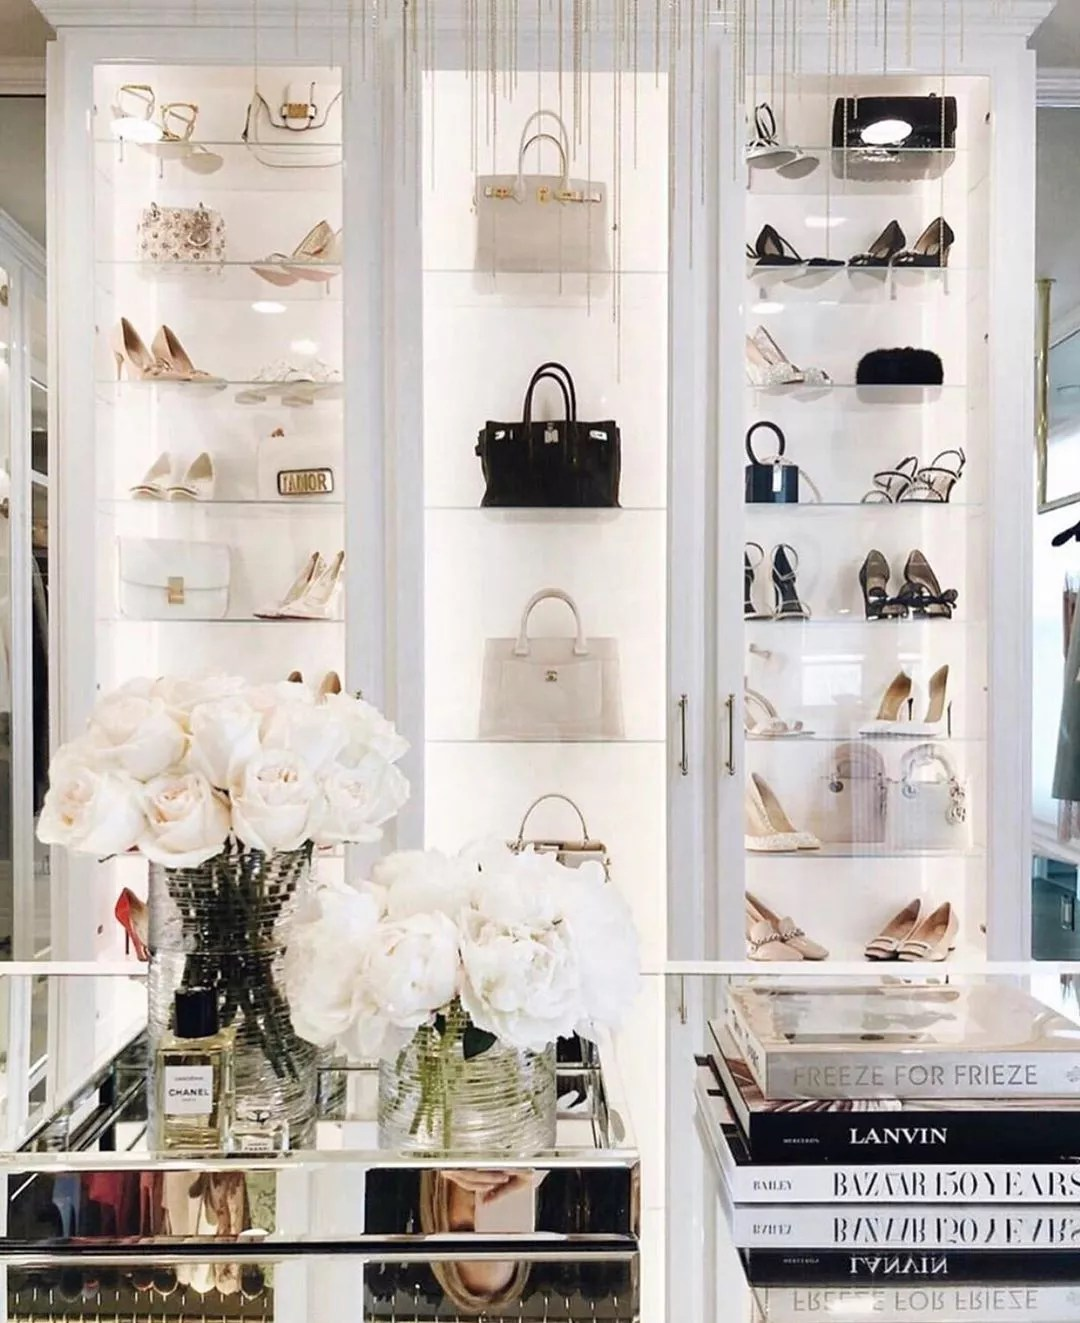 Shoes and purses in luxury closet. Photo by Instagram user @laclosetdesign